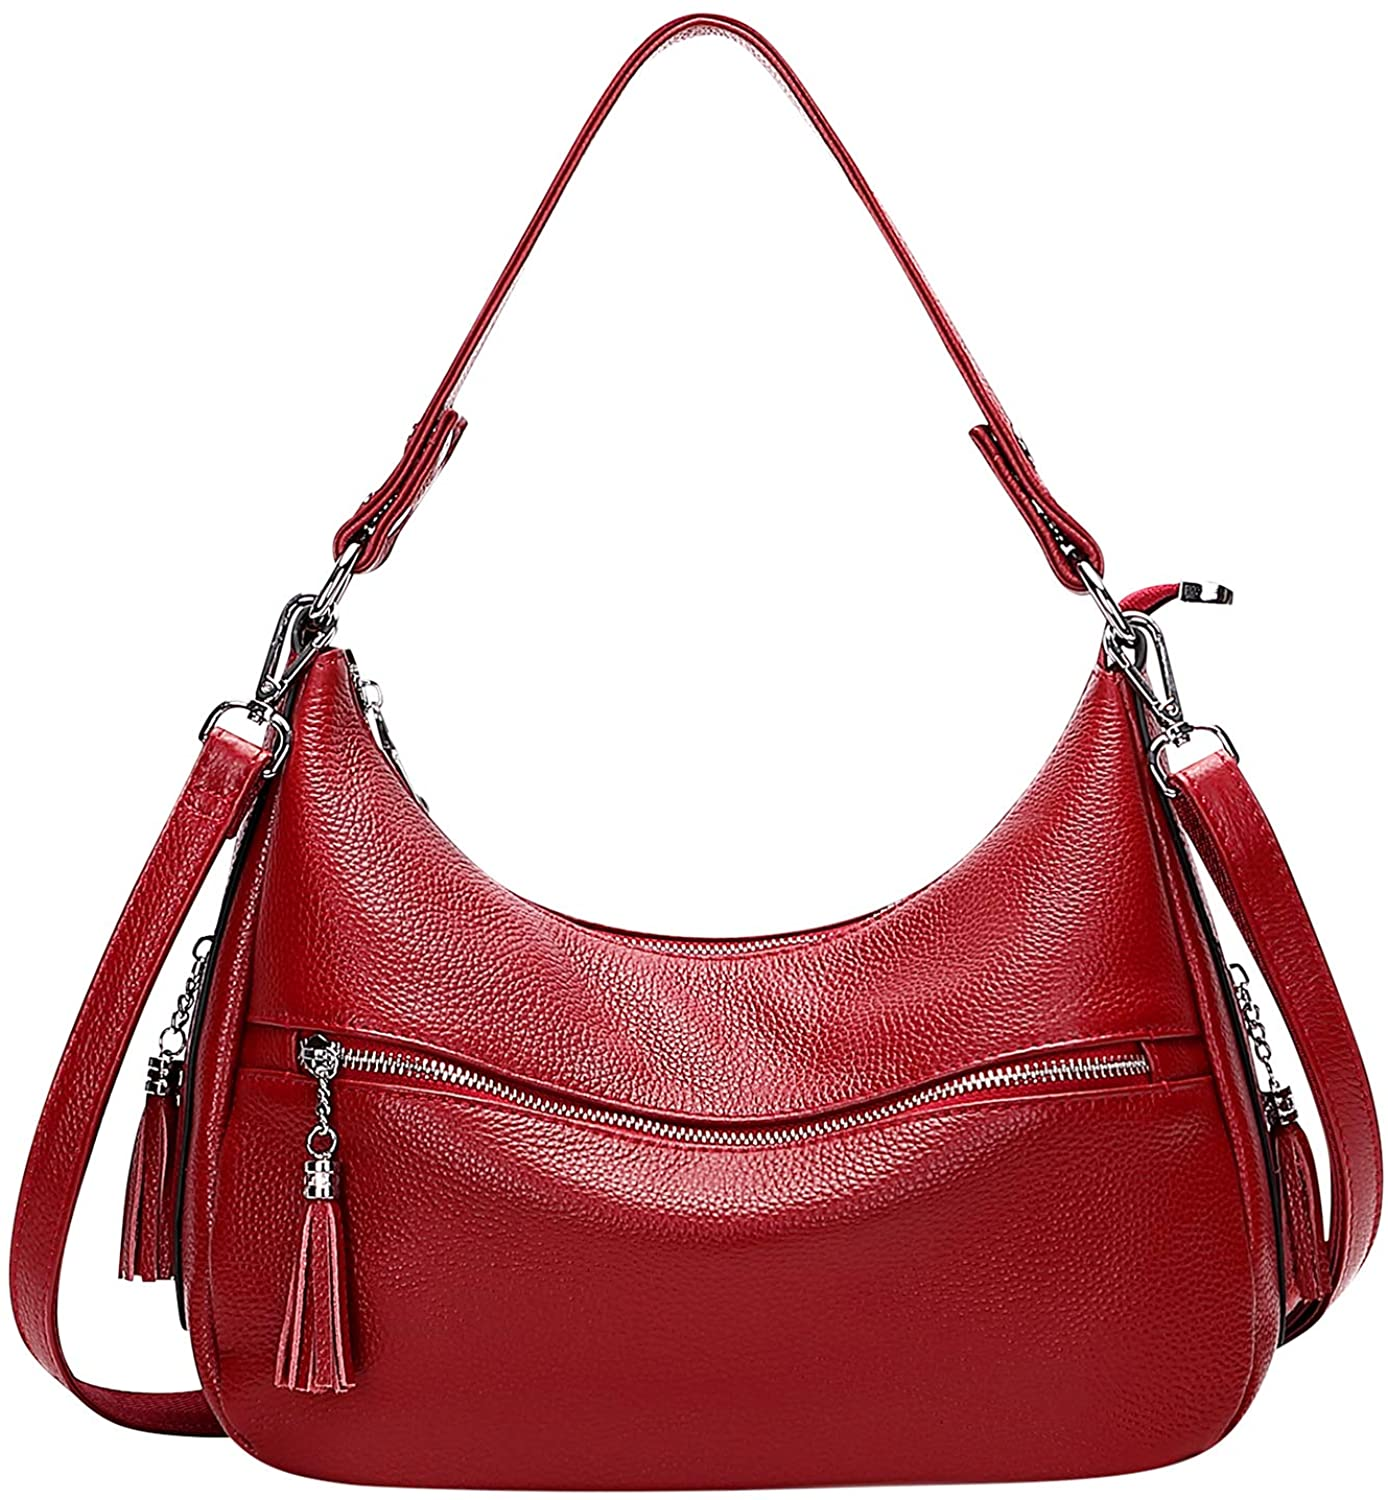 OVER EARTH Genuine Leather Purses and Handbags for Women Hobo Purse Shoulder Tote Bag Ladies Crossbody Bag with Tassel Medium